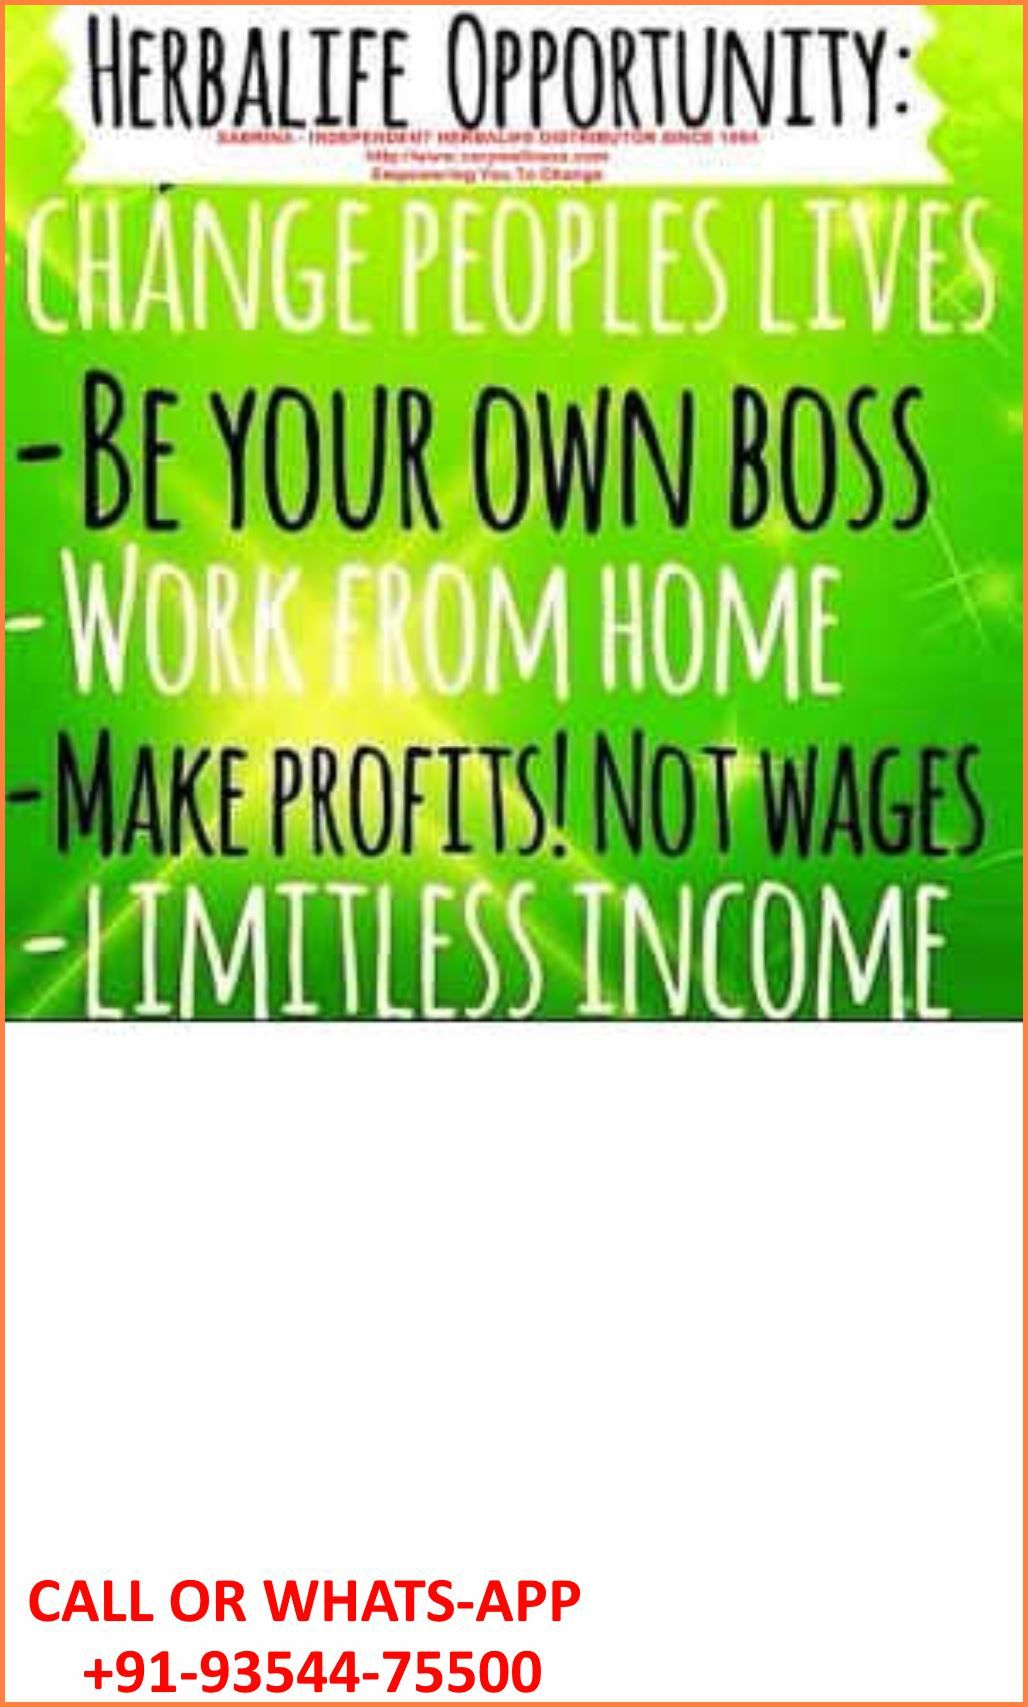 work from home jobs in india 2020 in 2020 Work from home